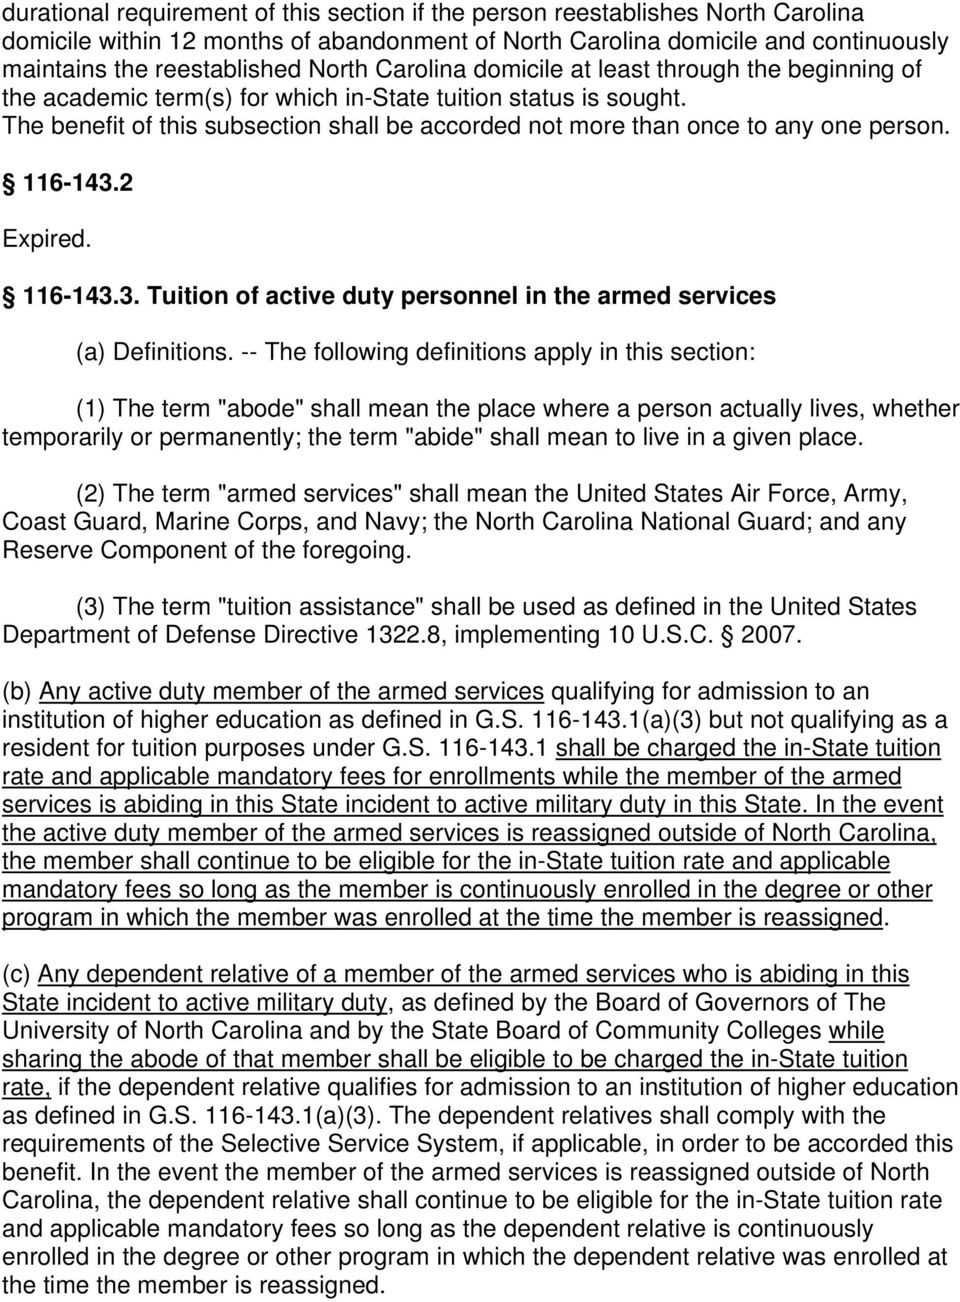 The benefit of this subsection shall be accorded not more than once to any one person. 116-143.2 Expired. 116-143.3. Tuition of active duty personnel in the armed services (a) Definitions.